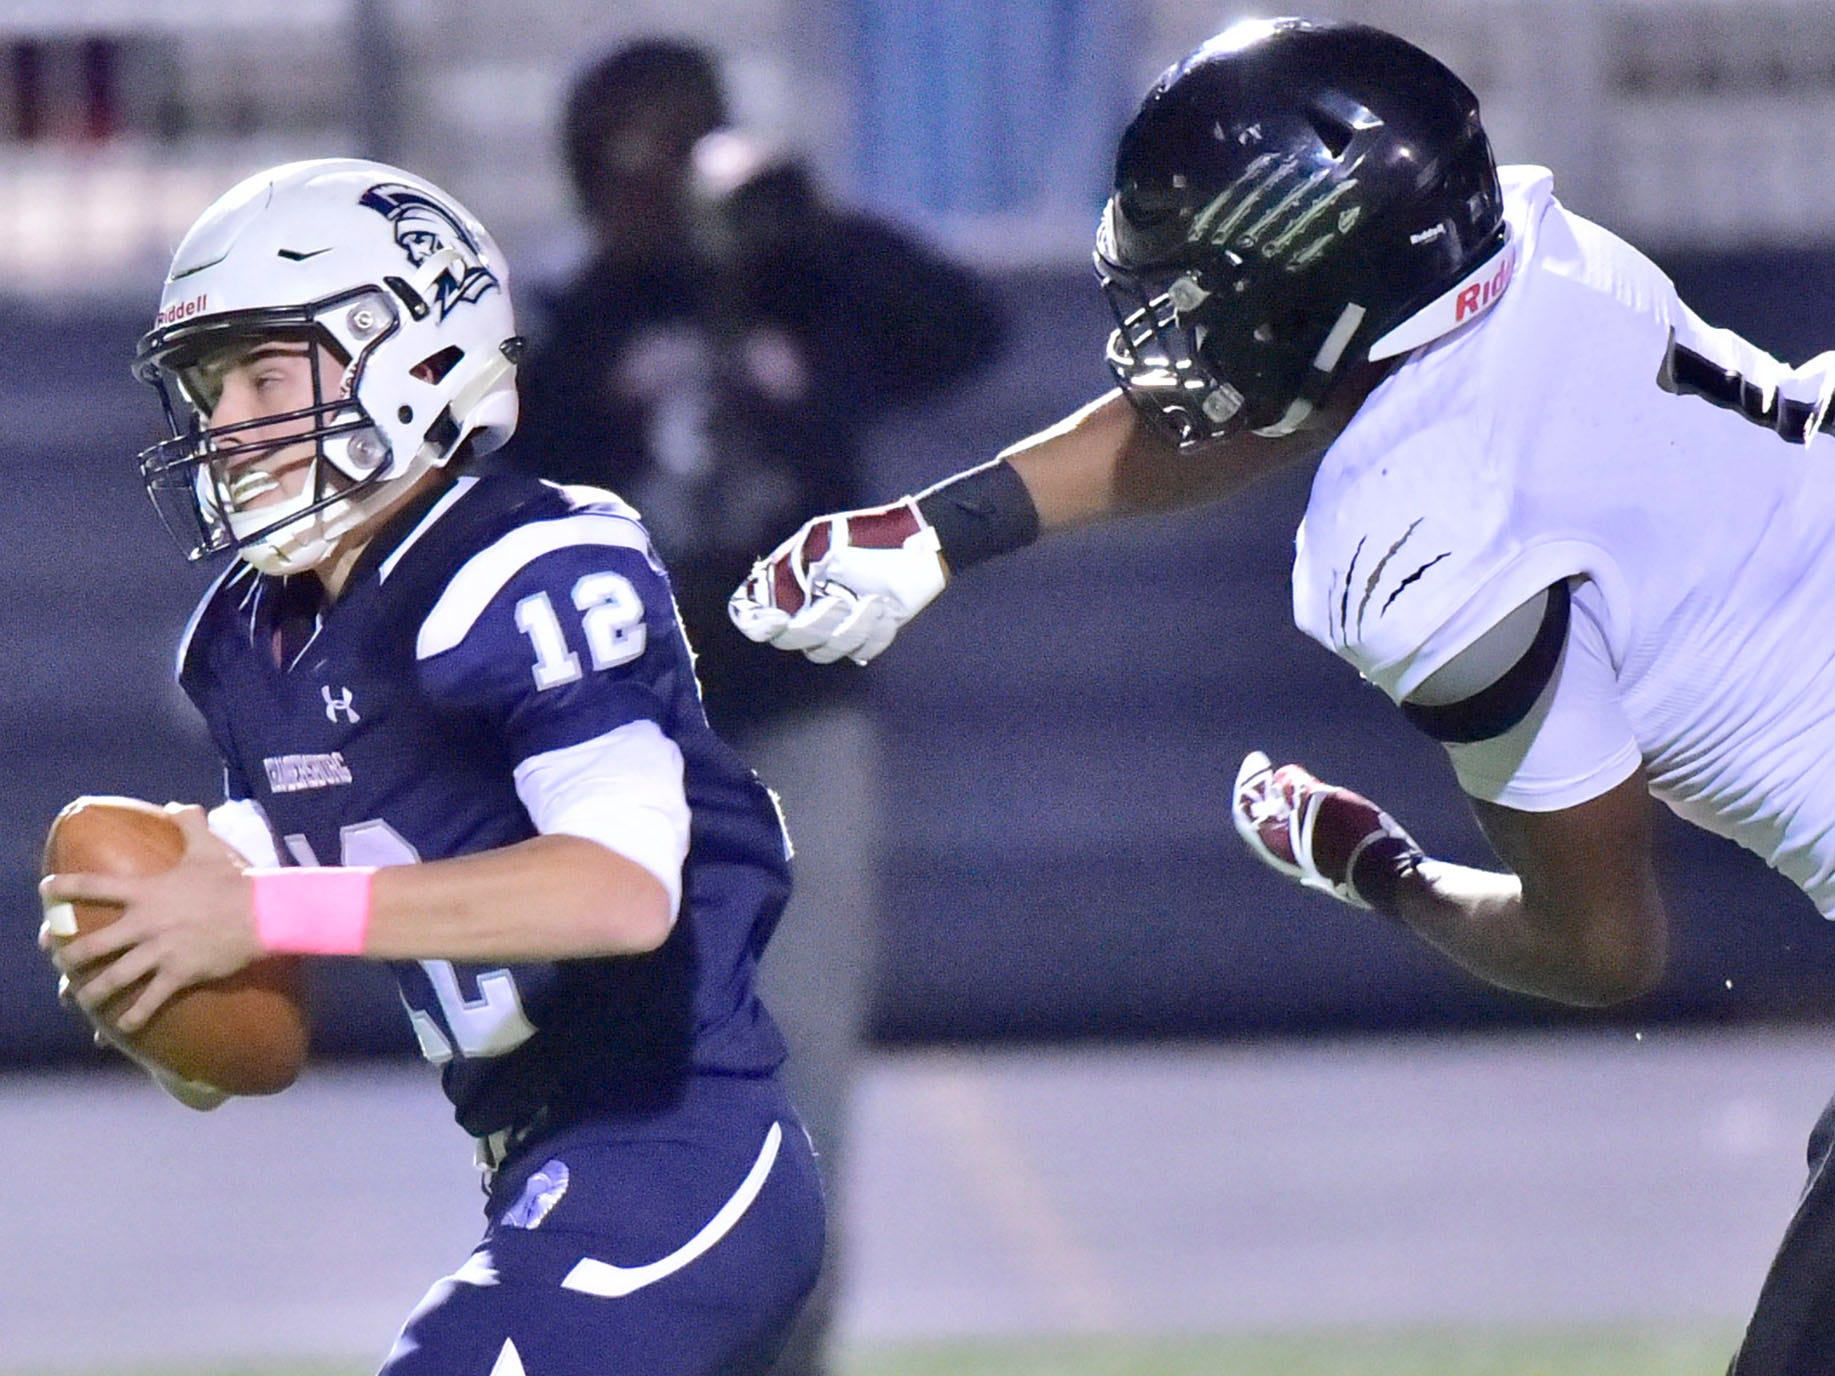 Chambersburg's QB Brady Stumbaugh (12) scrambles away from a Harrisburg defender. Chambersburg dropped a 28-13 game against Harrisburg in PIAA football on Friday, Oct. 12, 2018.